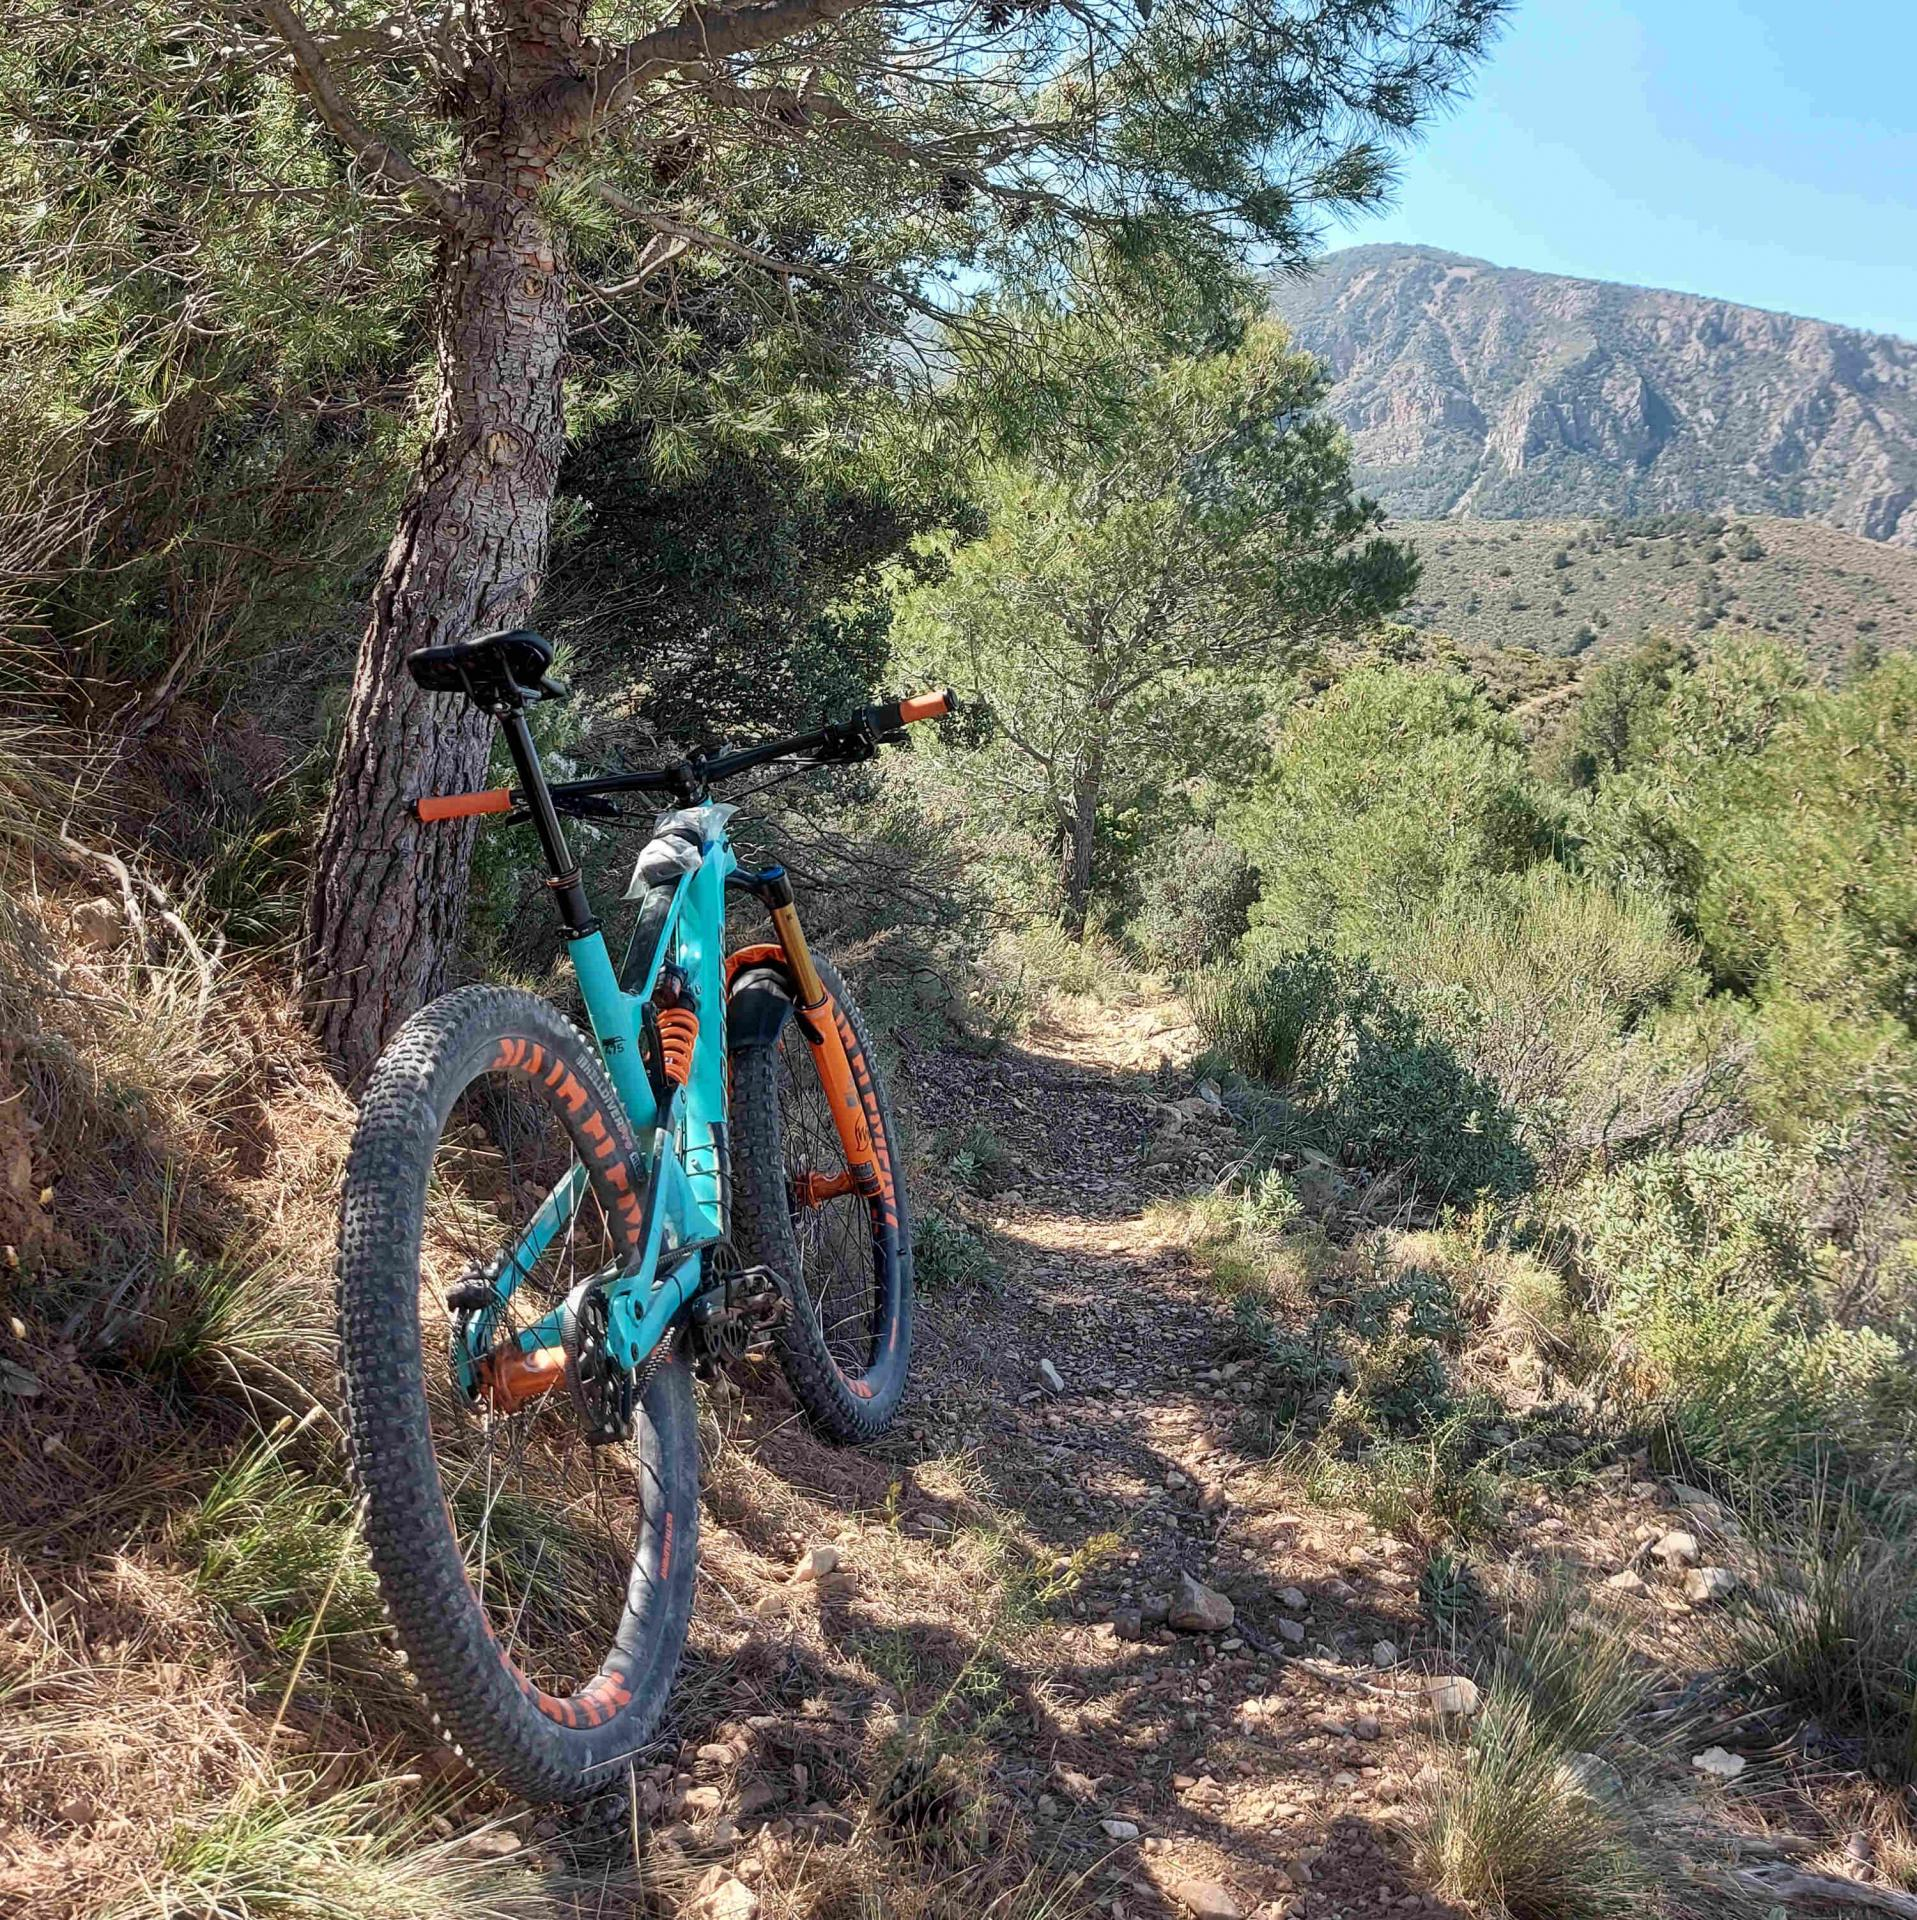 Scouting for mountain bike trails